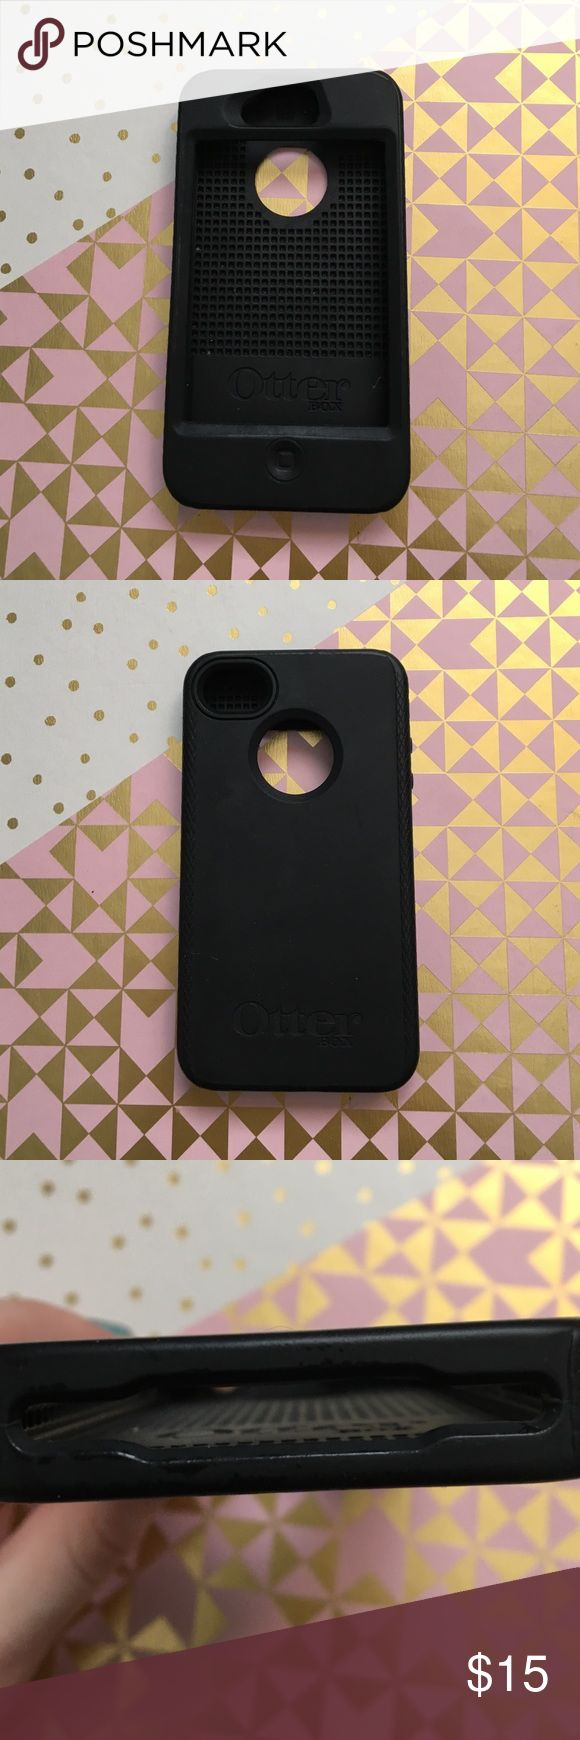 IPHONE 4/4s OTTERBOX PROTECTIVE CASE Fit for iphone 4/4s. It is not new and has been used, but there are little to no scratches, scuffs, or usage and looks new. It has a rubber material and is very protective. OtterBox Accessories Phone Cases